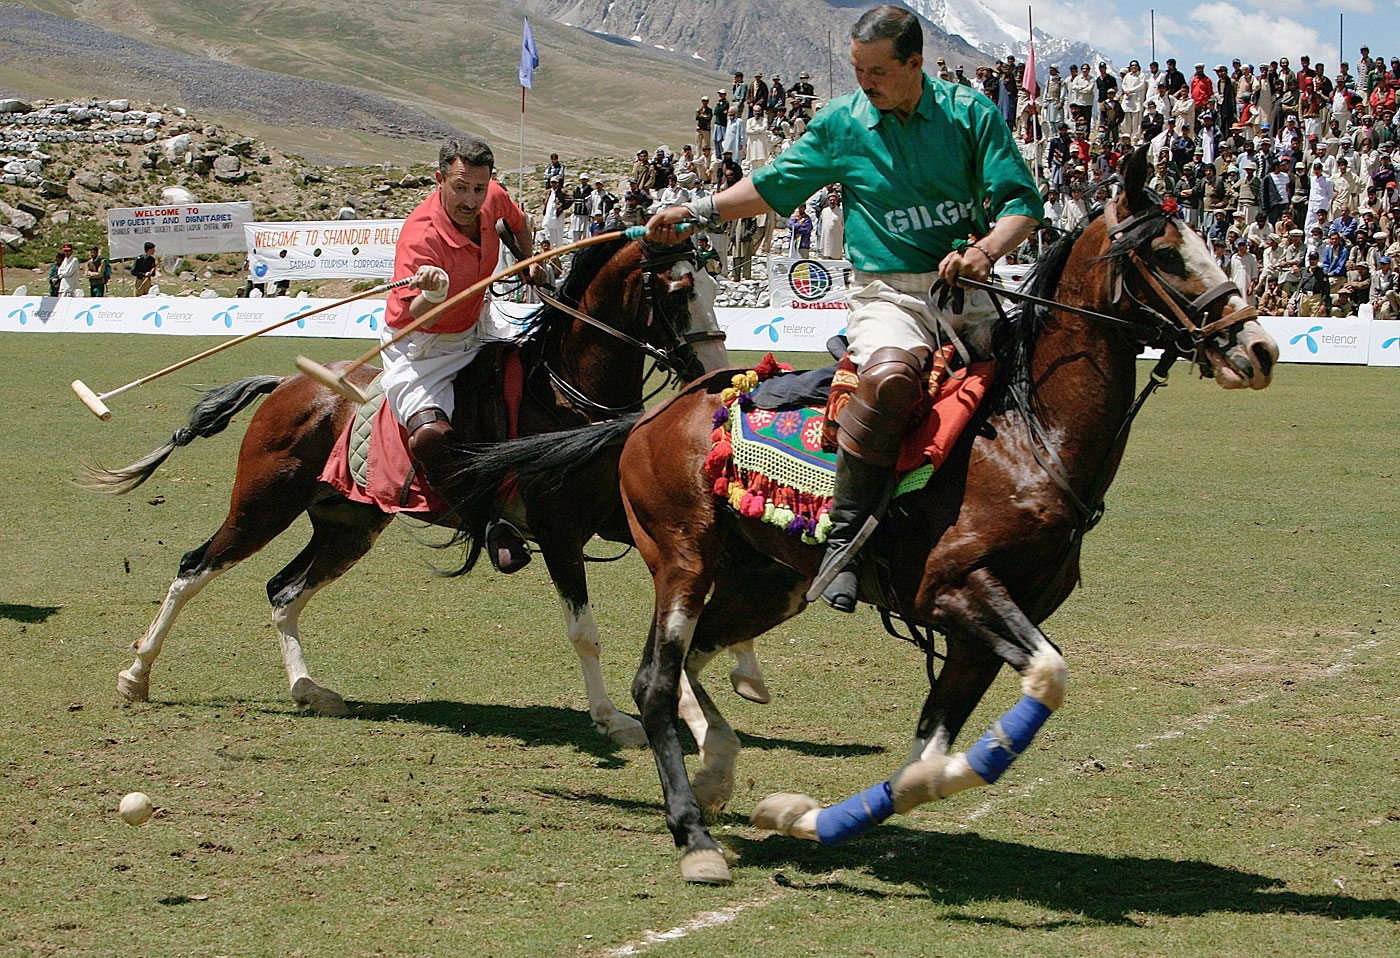 The annual polo contest at 12,000 ft on Shandur Top remains one of the world's greatest under-known sporting spectacles